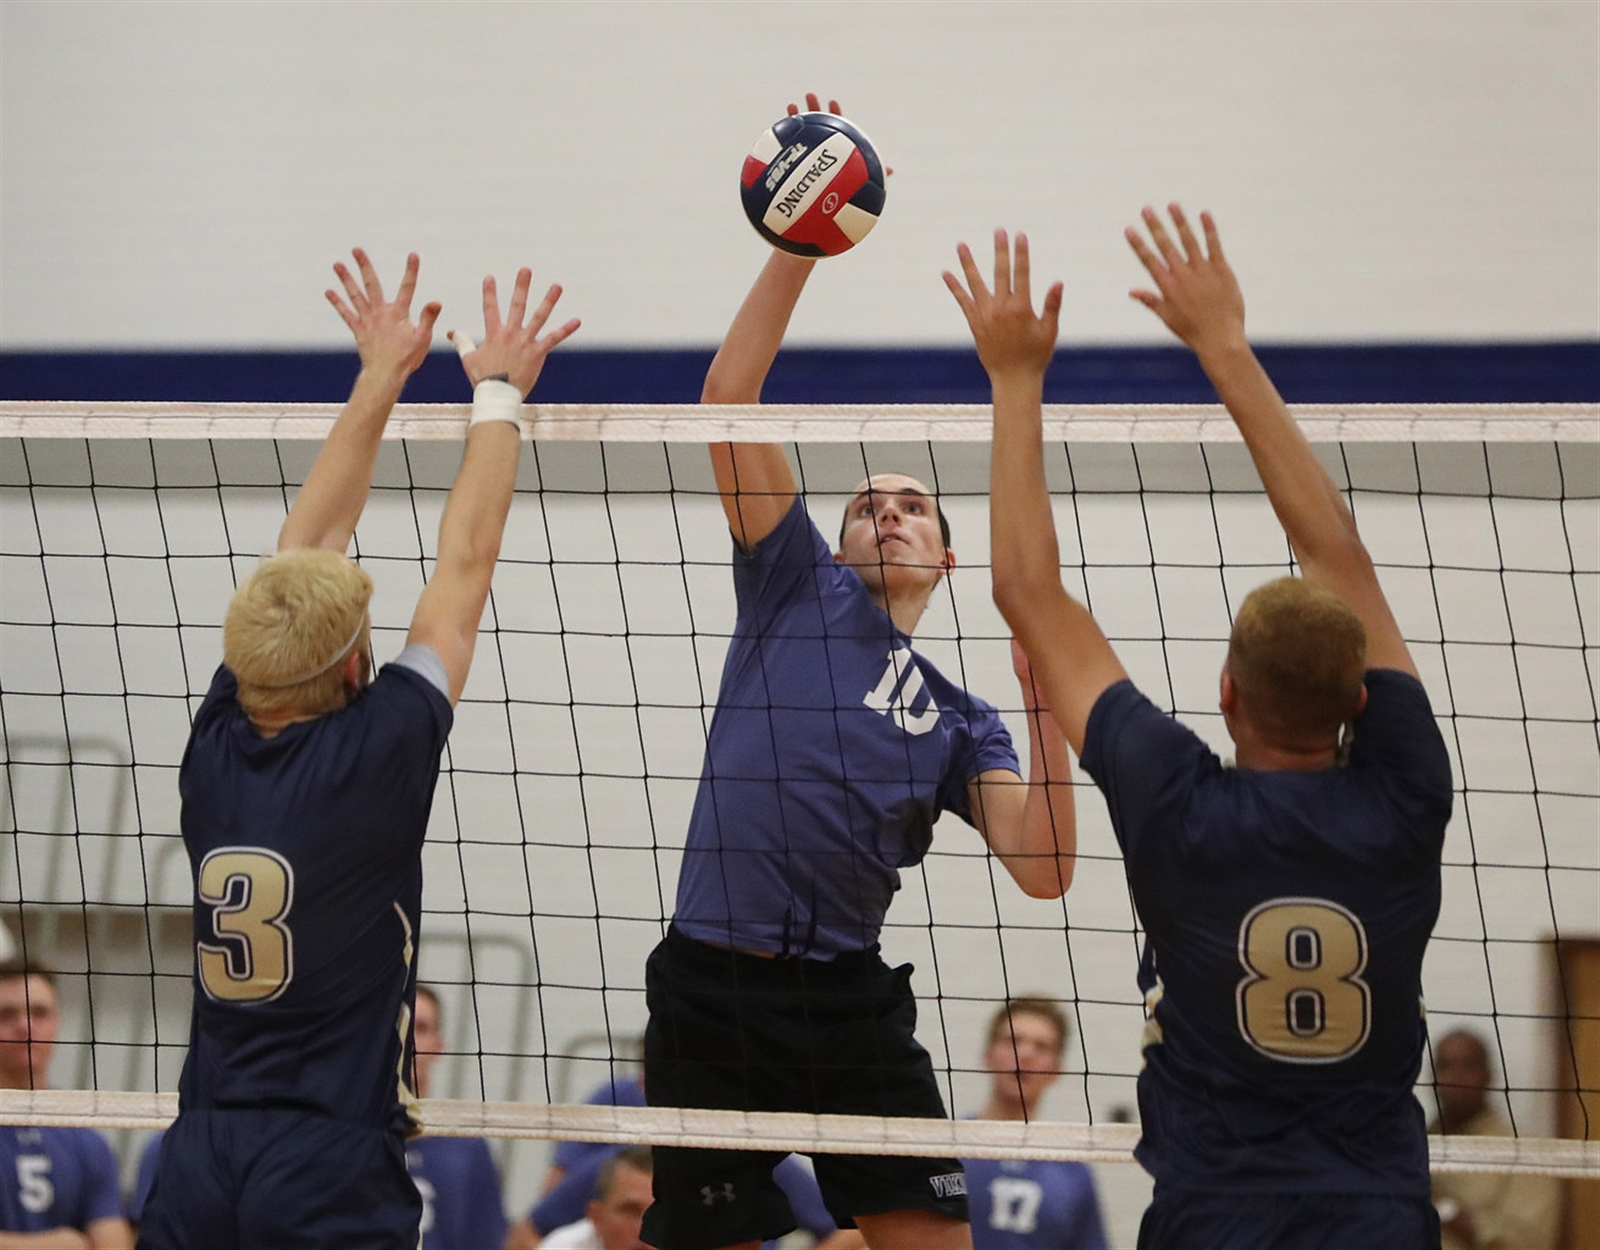 Matthew Logel, of Grand Island, kills the ball past Alexander Stoj, left, and Solomon Shabazz, of Sweet Home.